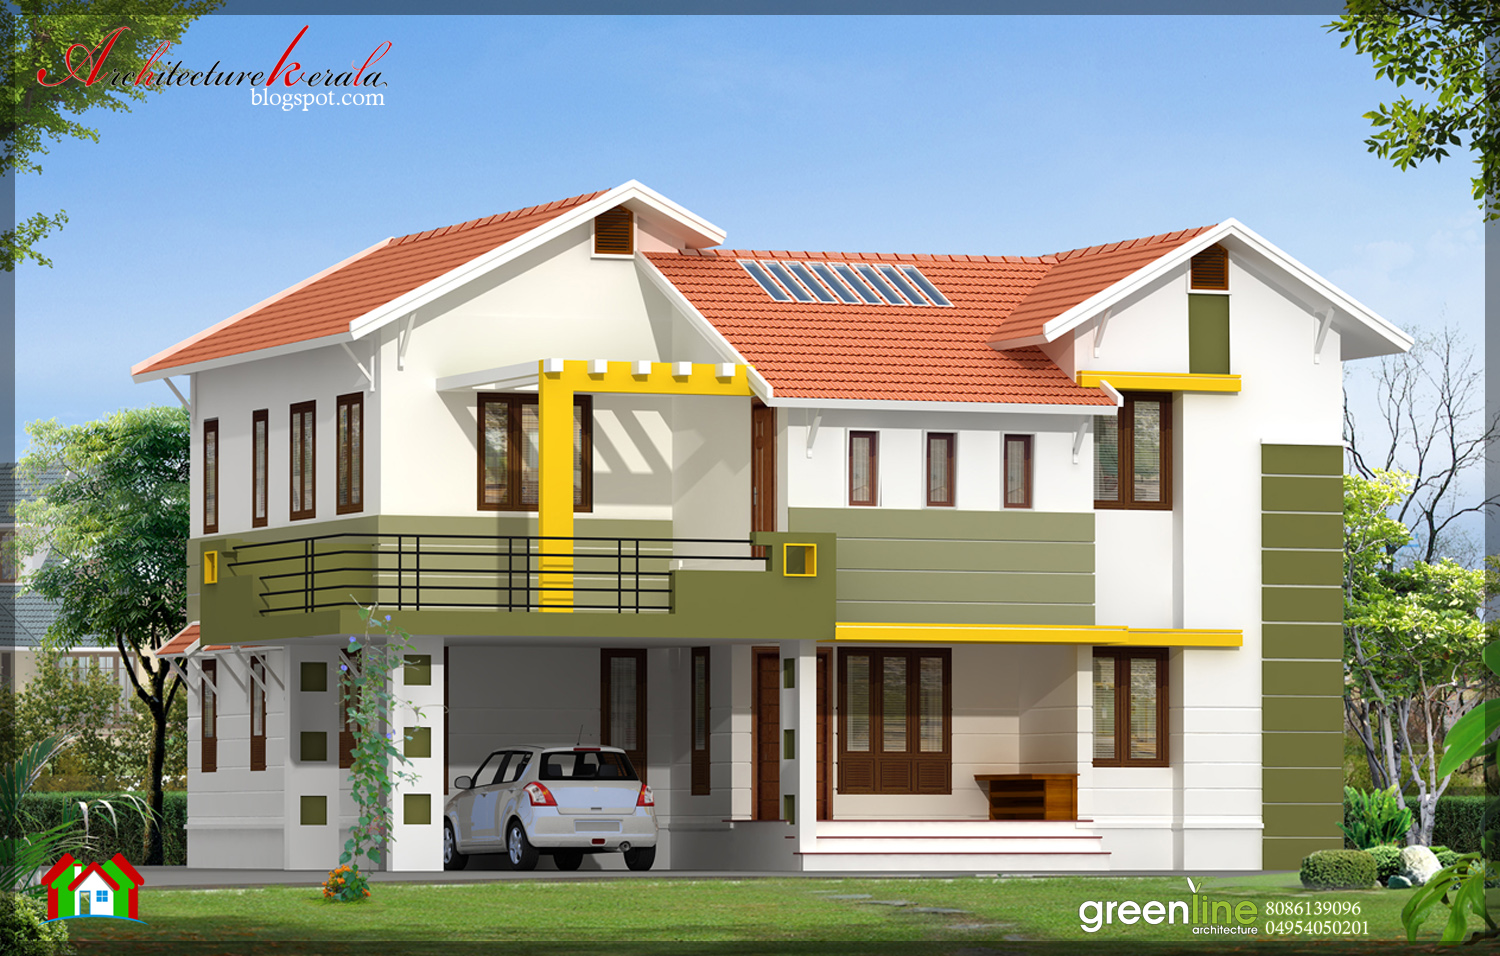 Architecture kerala 4 bhk contemporary style indian home for Contemporary style homes in kerala